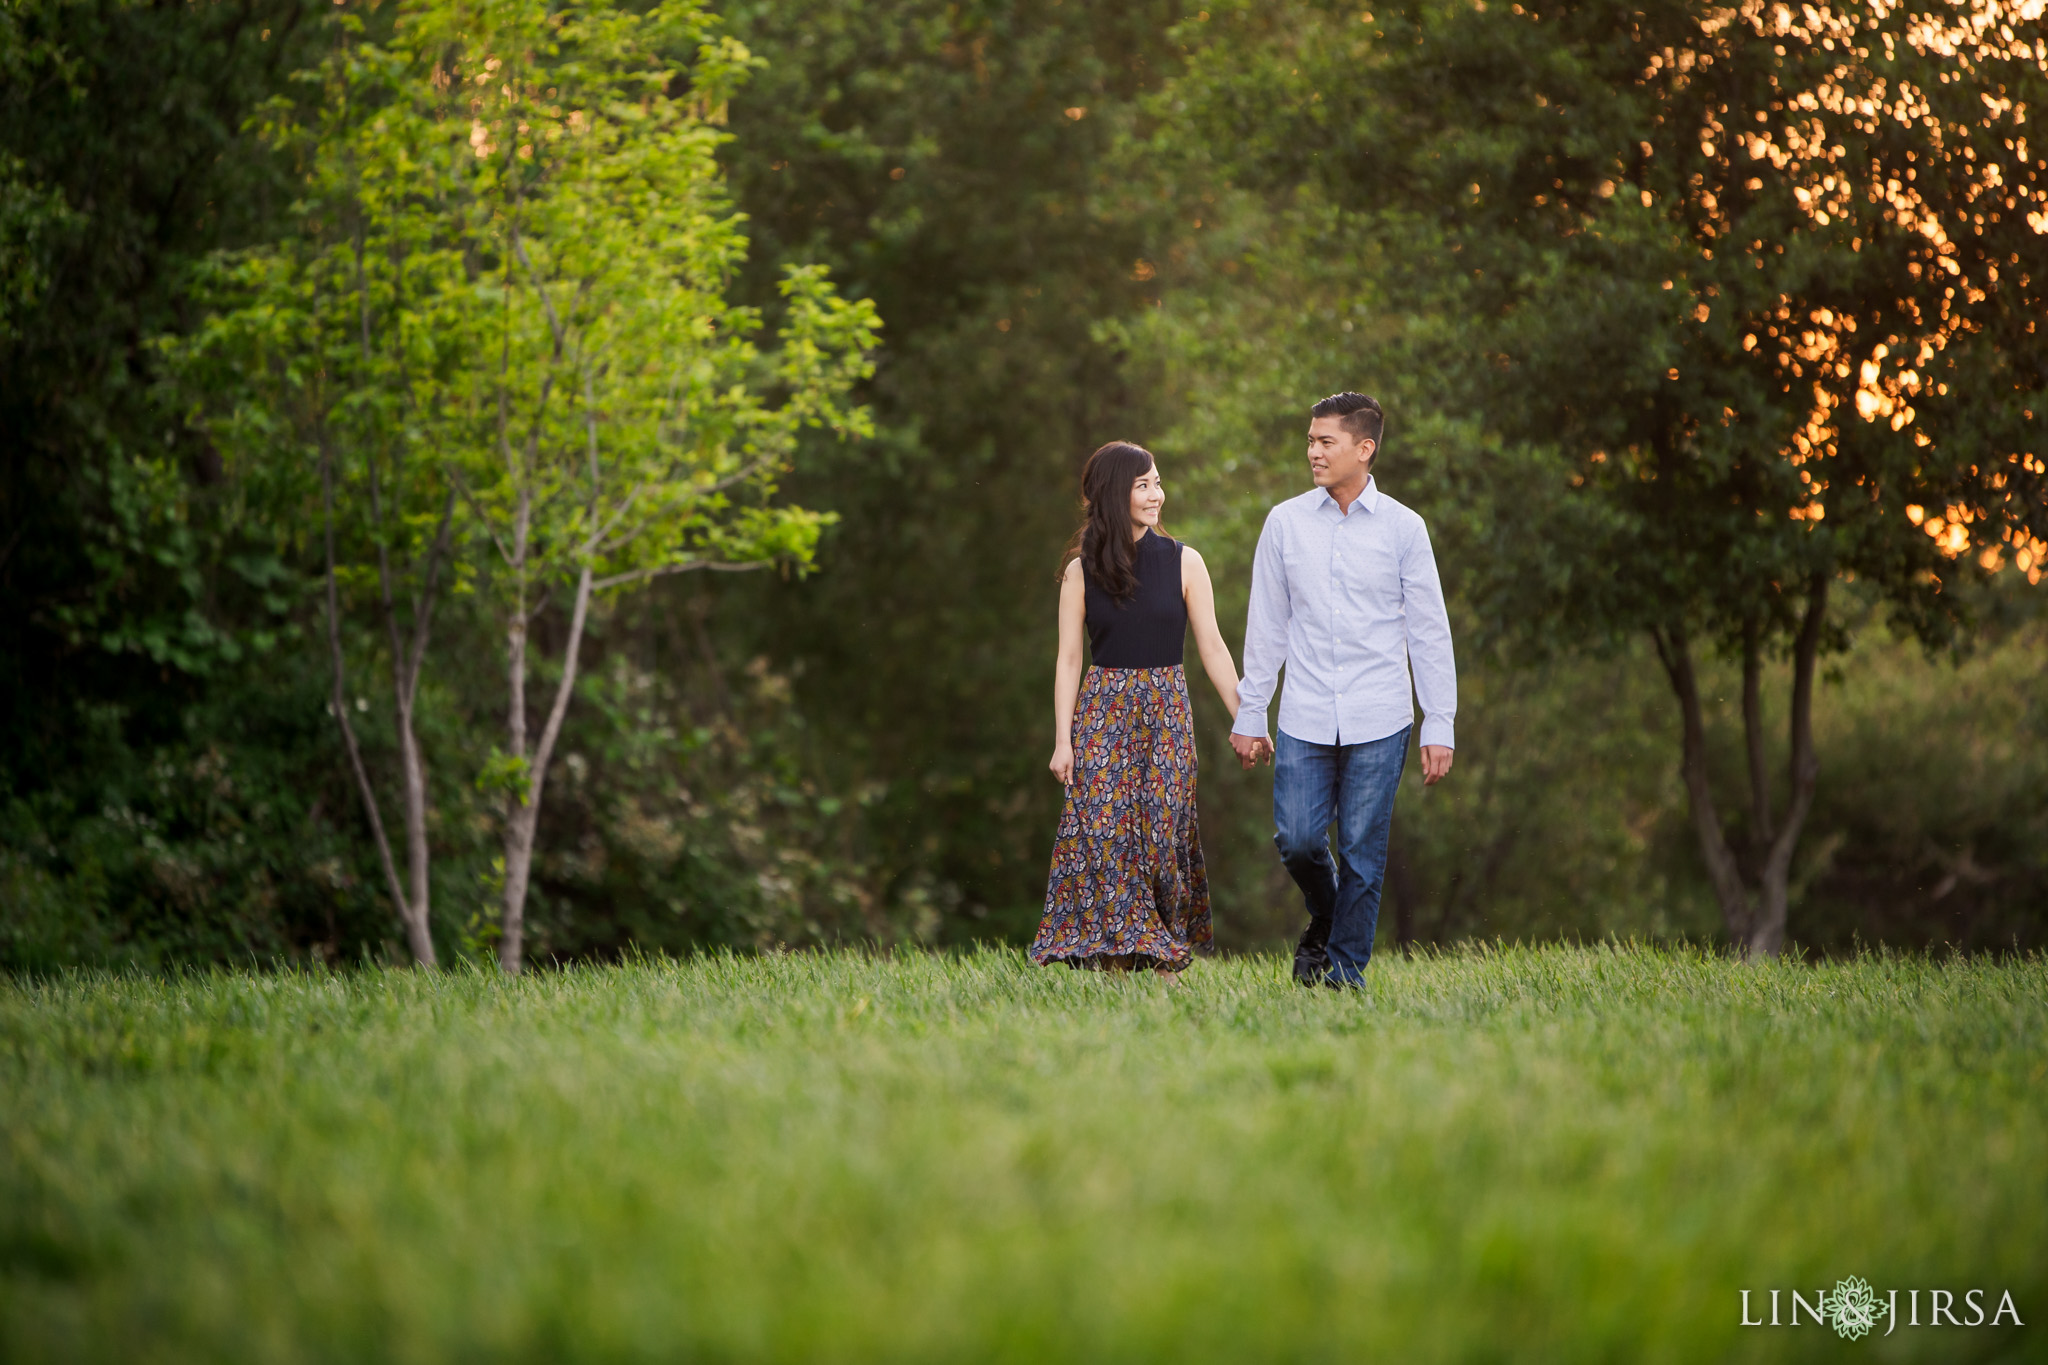 10 Vista Hermosa Natural Park Los Angeles Engagement Photography